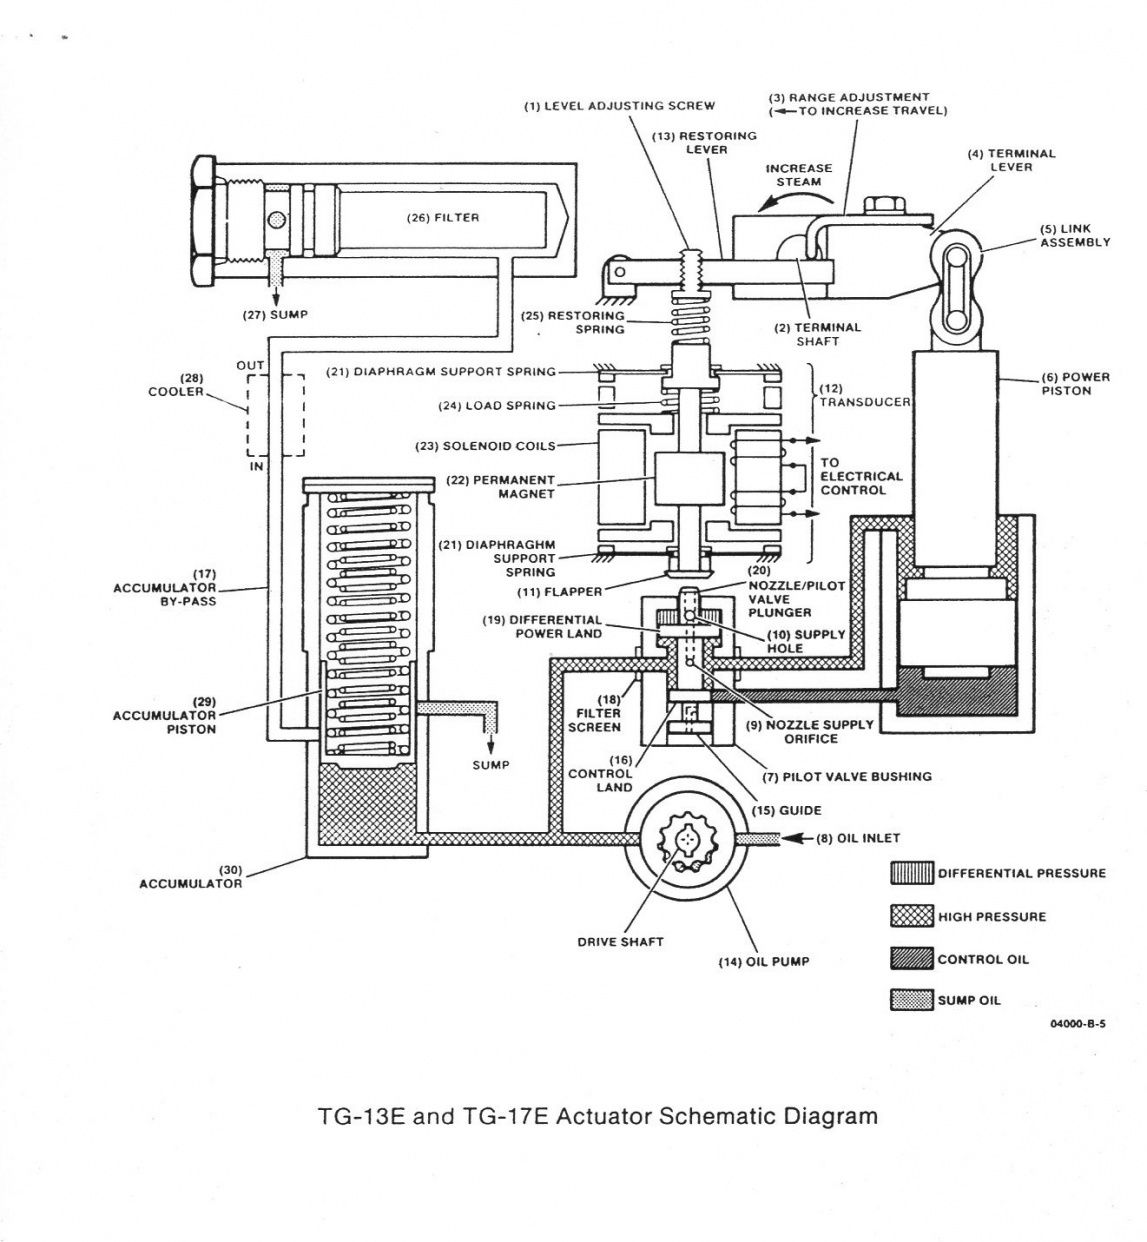 Woodward Type Tg-13 Control Schematic Diagram